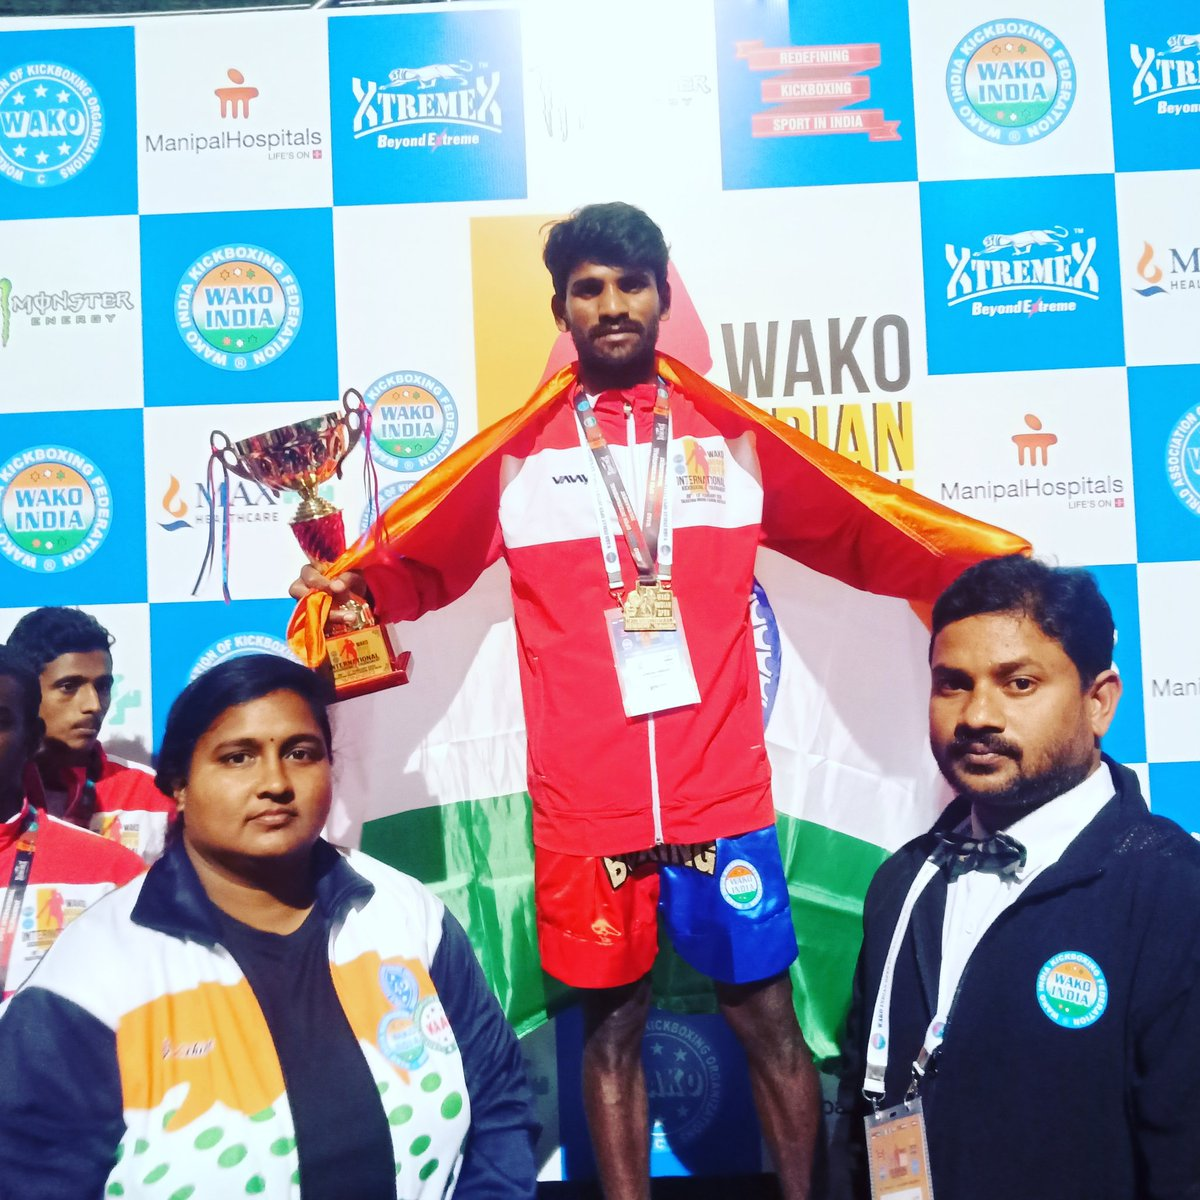 WAKO INDIAN OPEN INTERNATIONAL KICKBOXING CHAMPIONSHIP 2020🇮🇳🇮🇳🇮🇳 New Delhi,, Thanks you VDK sir #VijayDeverakonda, without your sponsorship and support I never got tthis achievement Thanks you so much VDK your the real HERO😍😍😍😍😍😍